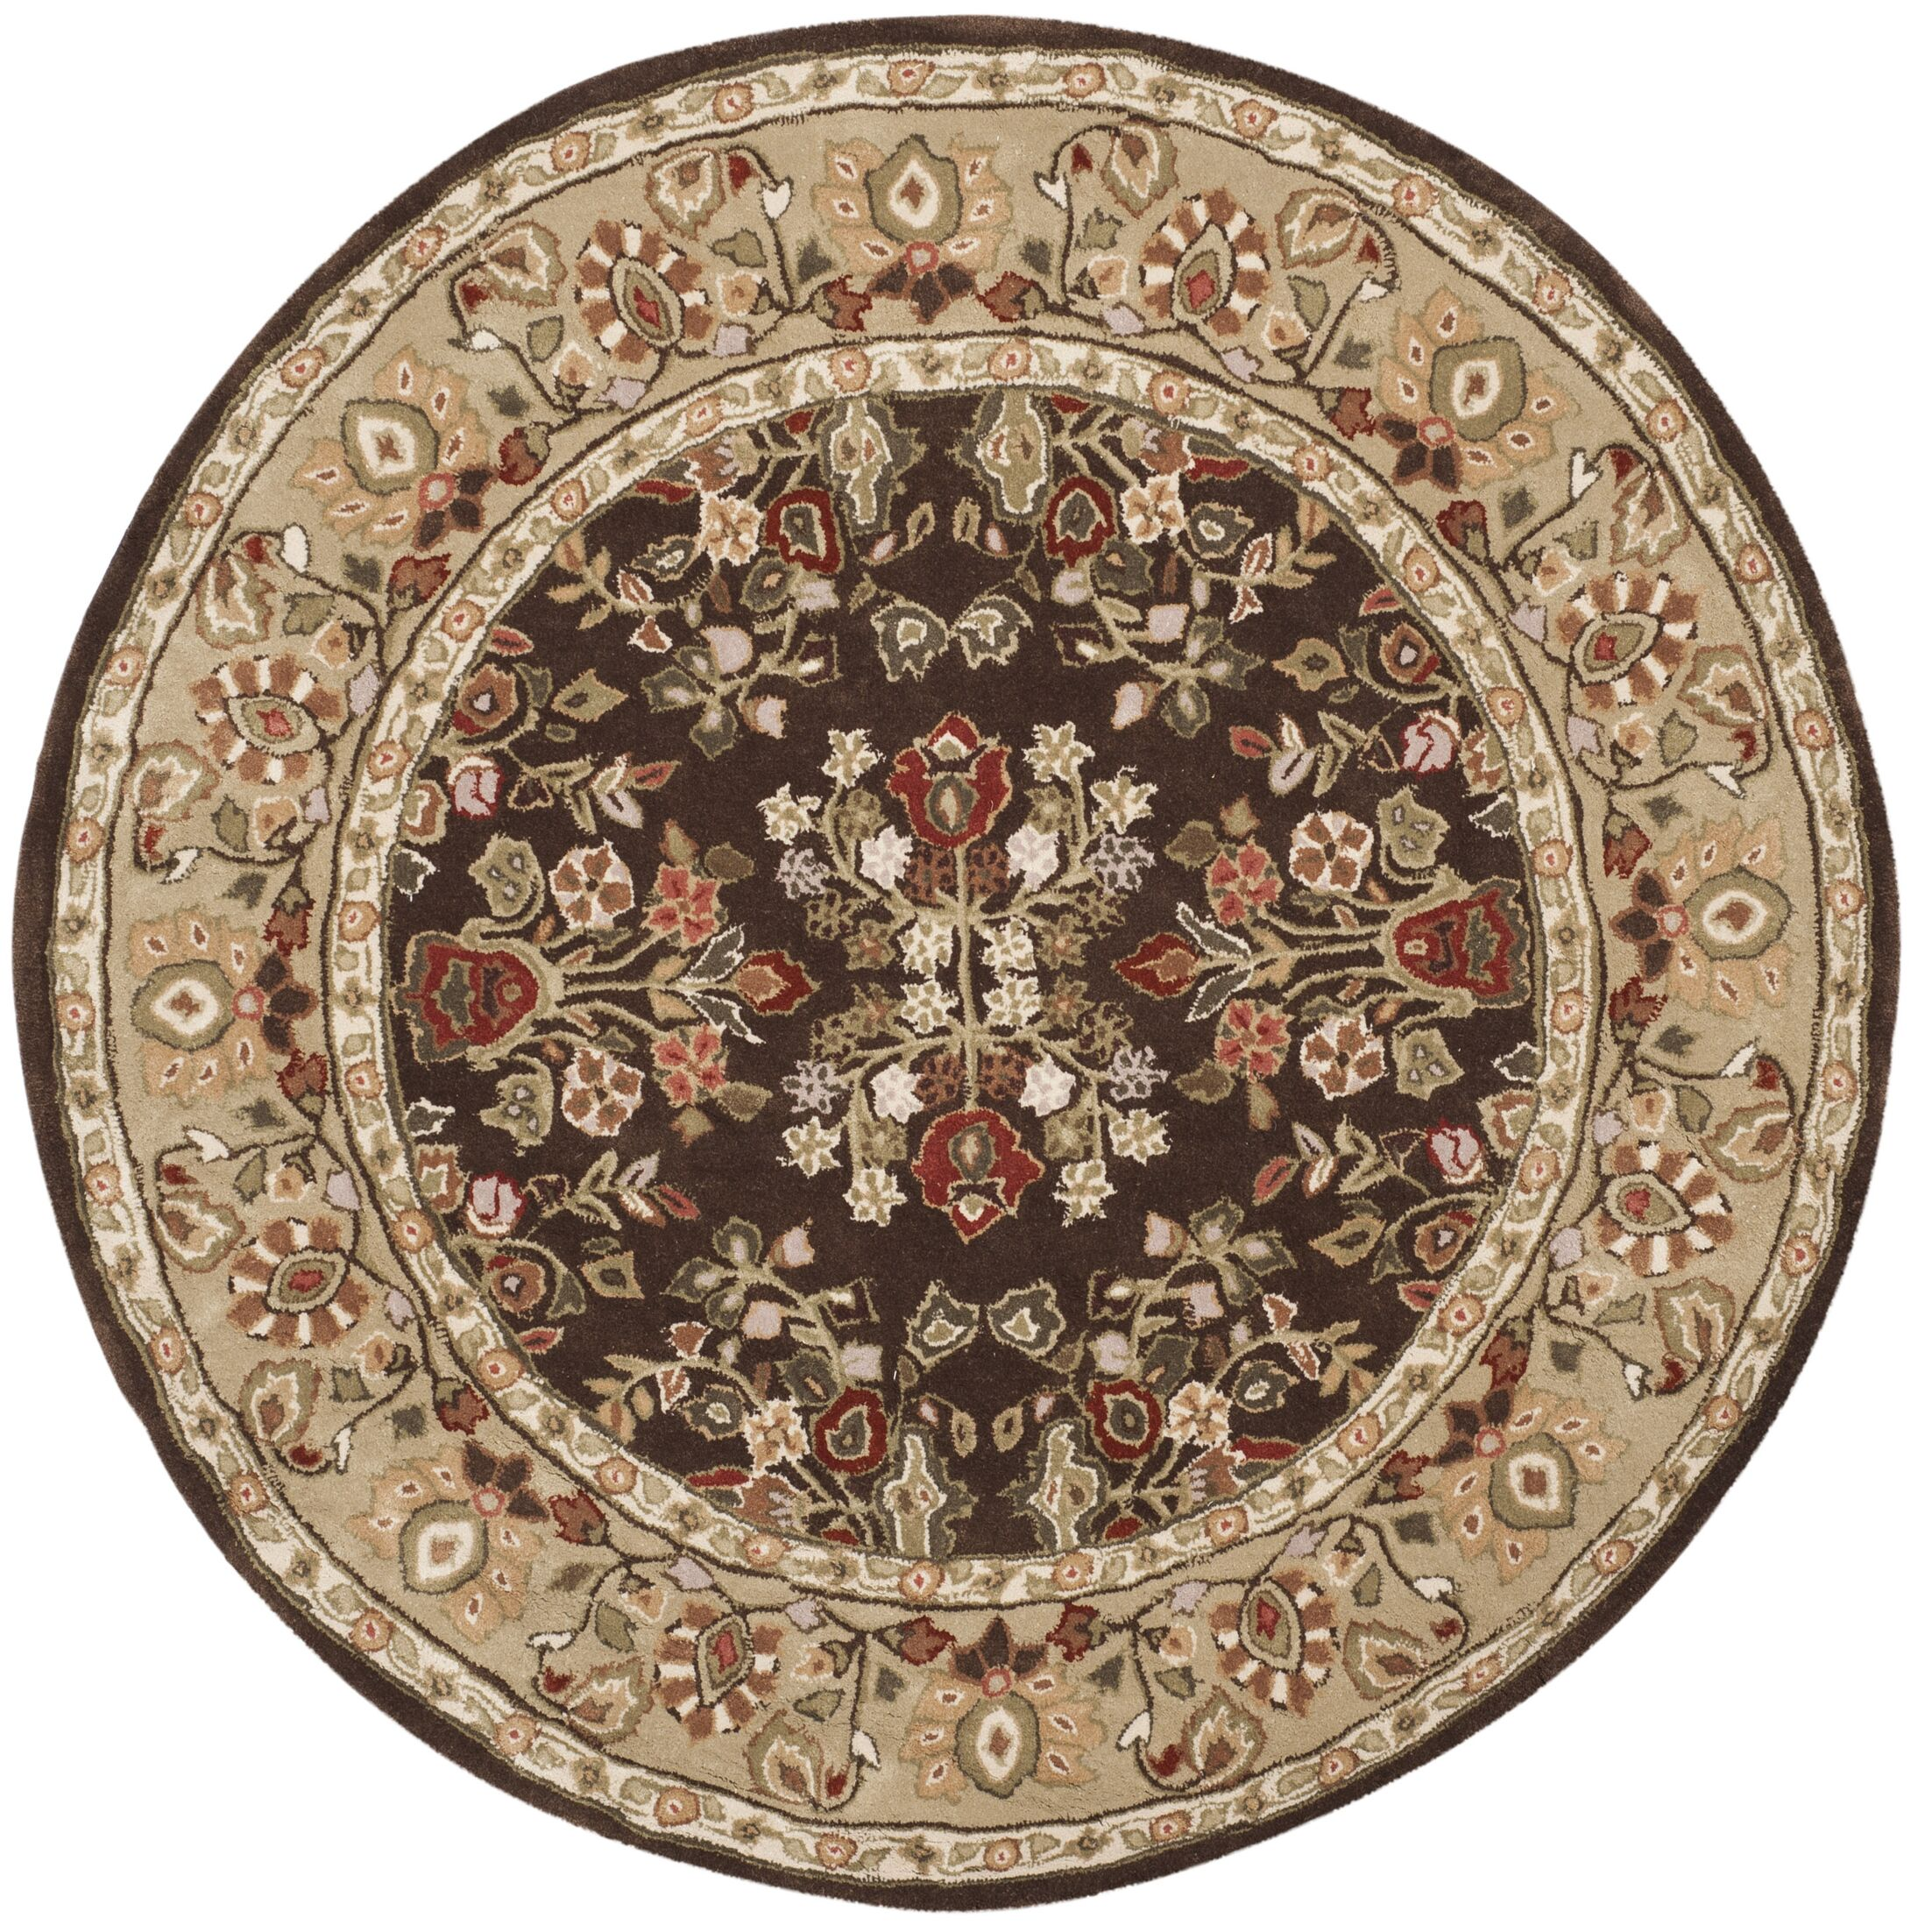 Stacy Hand Woven Arcrylic Brown/Green Area Rug Rug Size: Round 6' x 6'